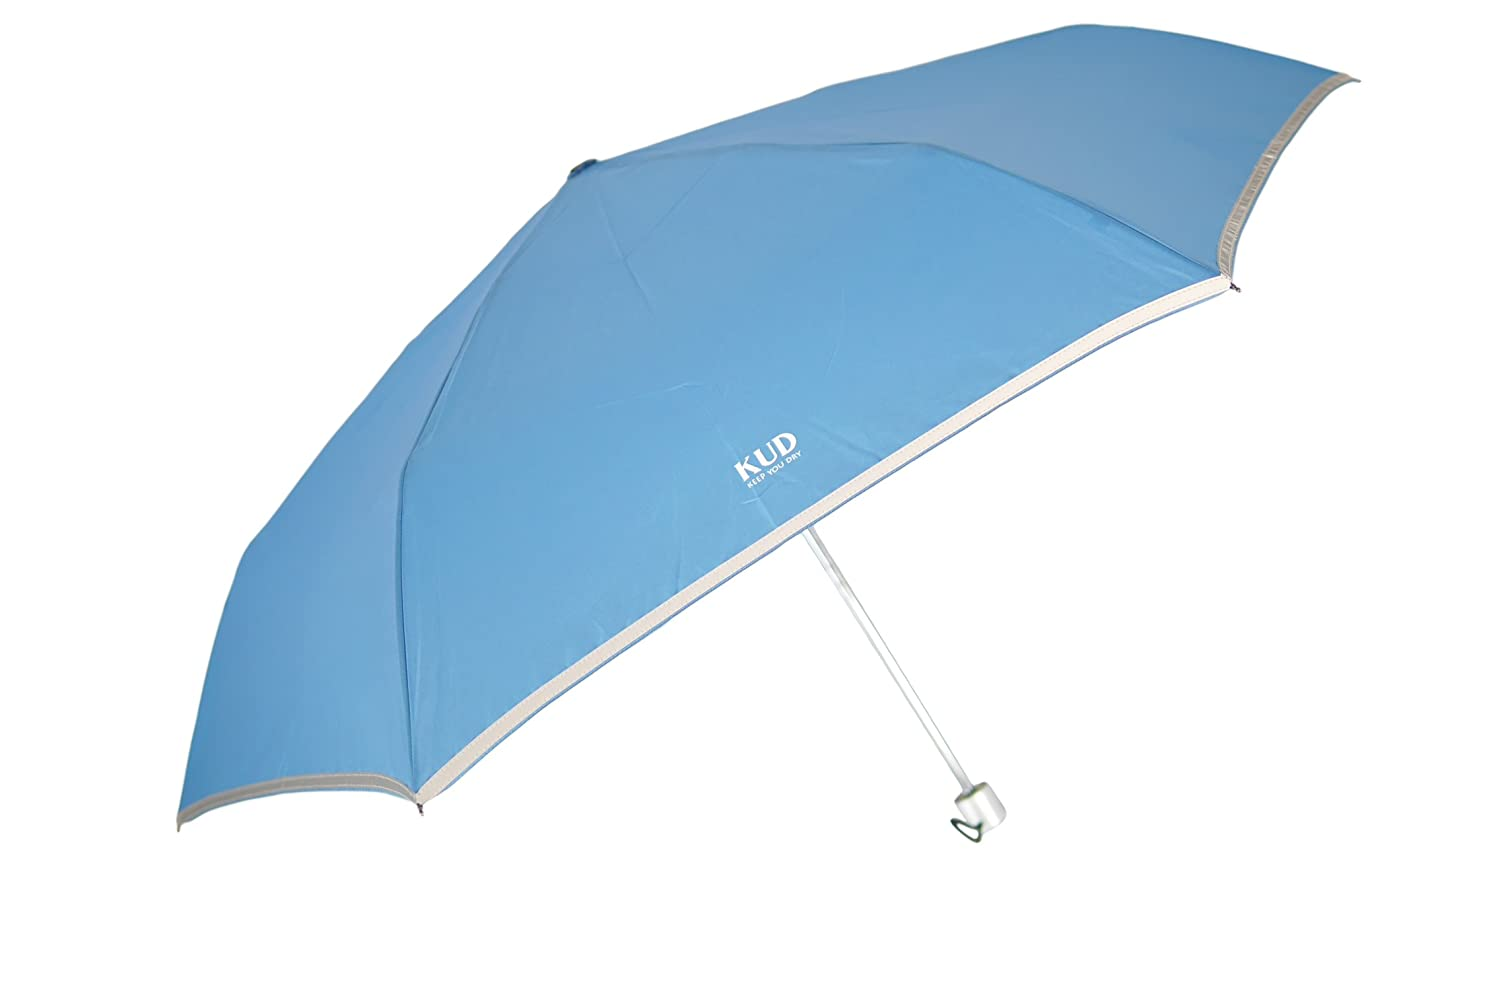 KUD Lightweight Compact travel umbrella with 50 inch Arc large coverage